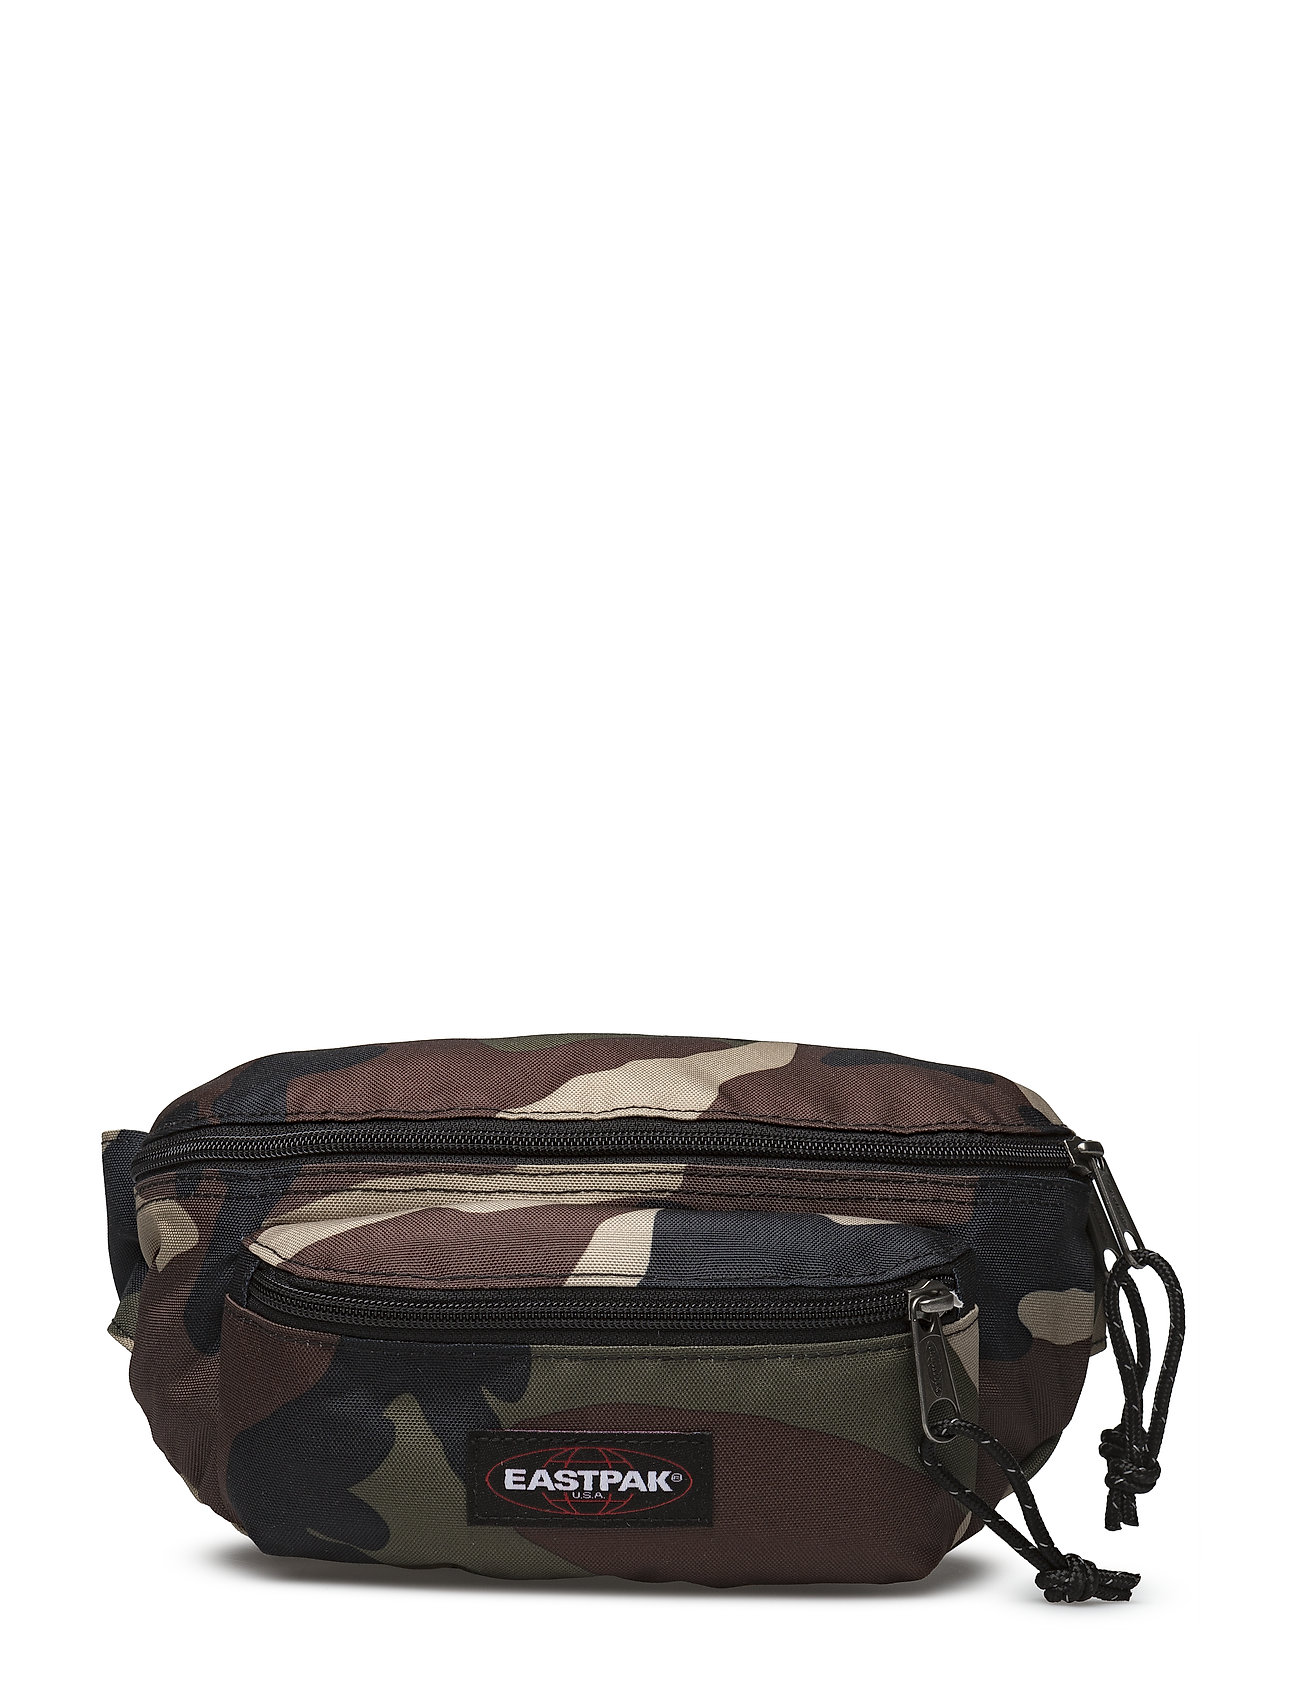 Eastpak Doggy Bag - CAMO